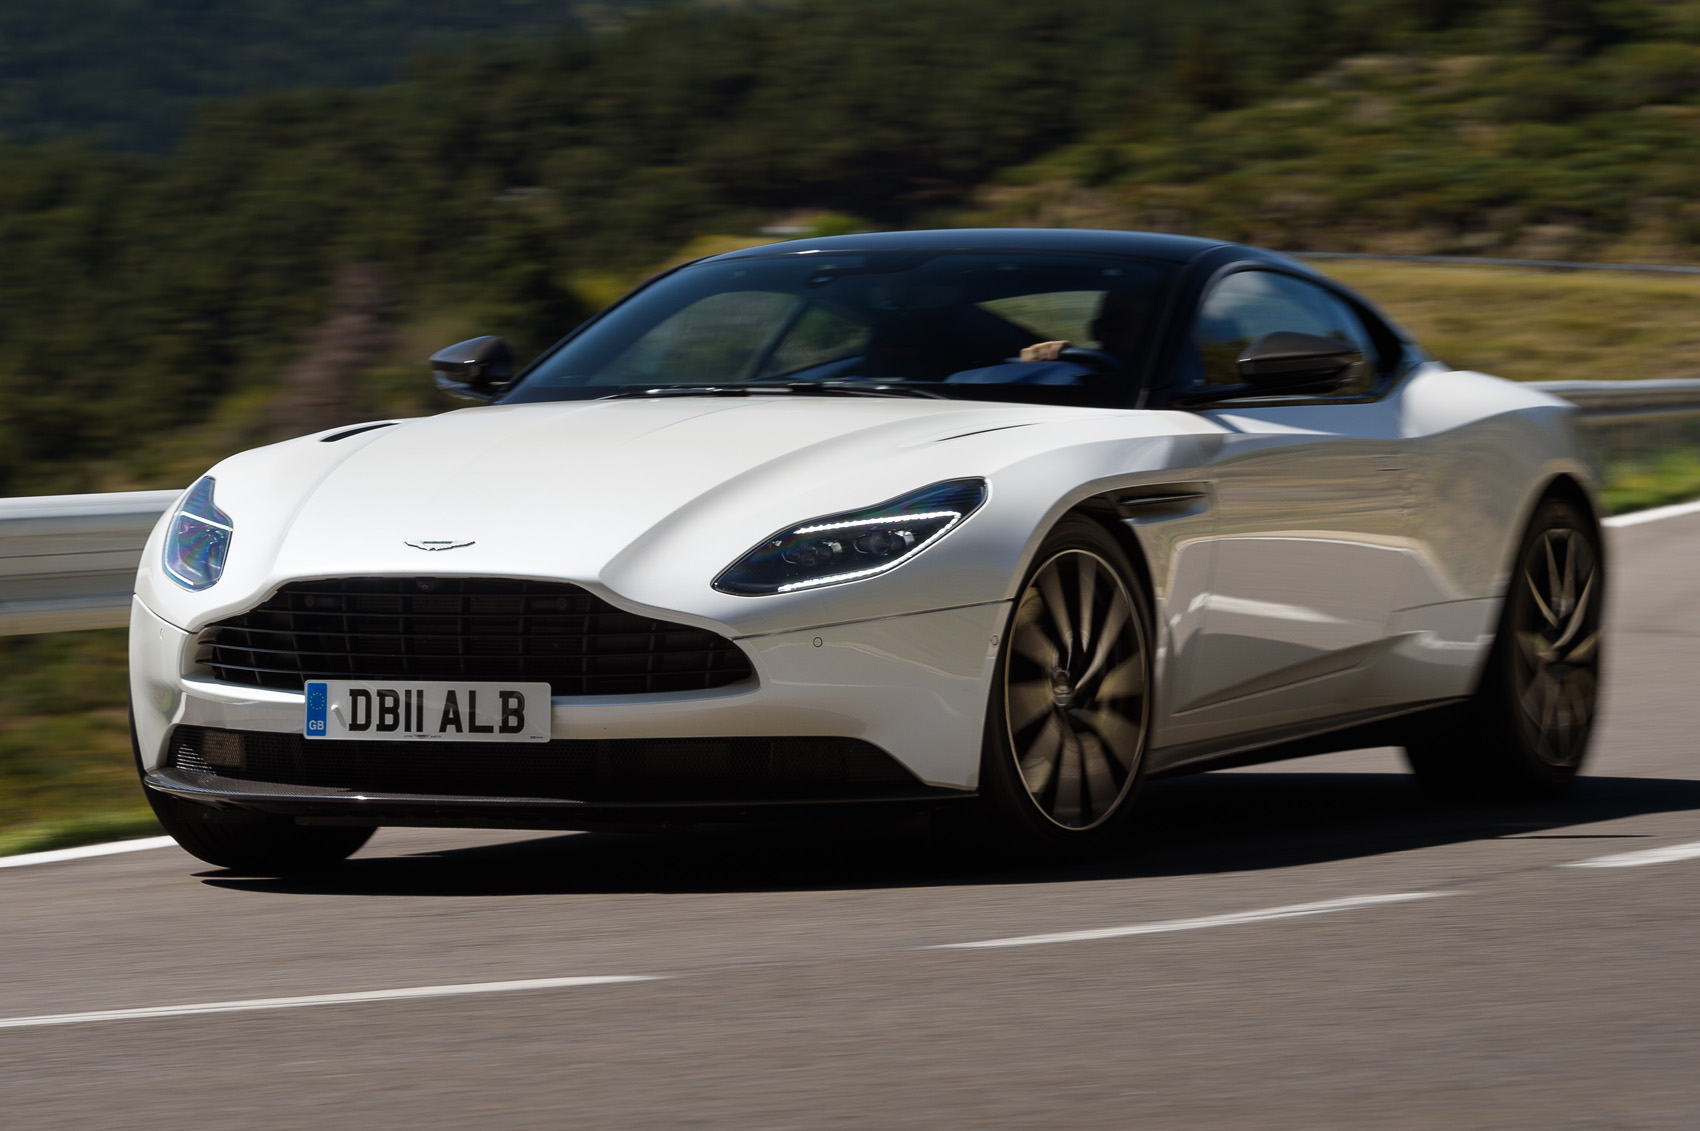 aston martin db11 v8 2017 review | autocar